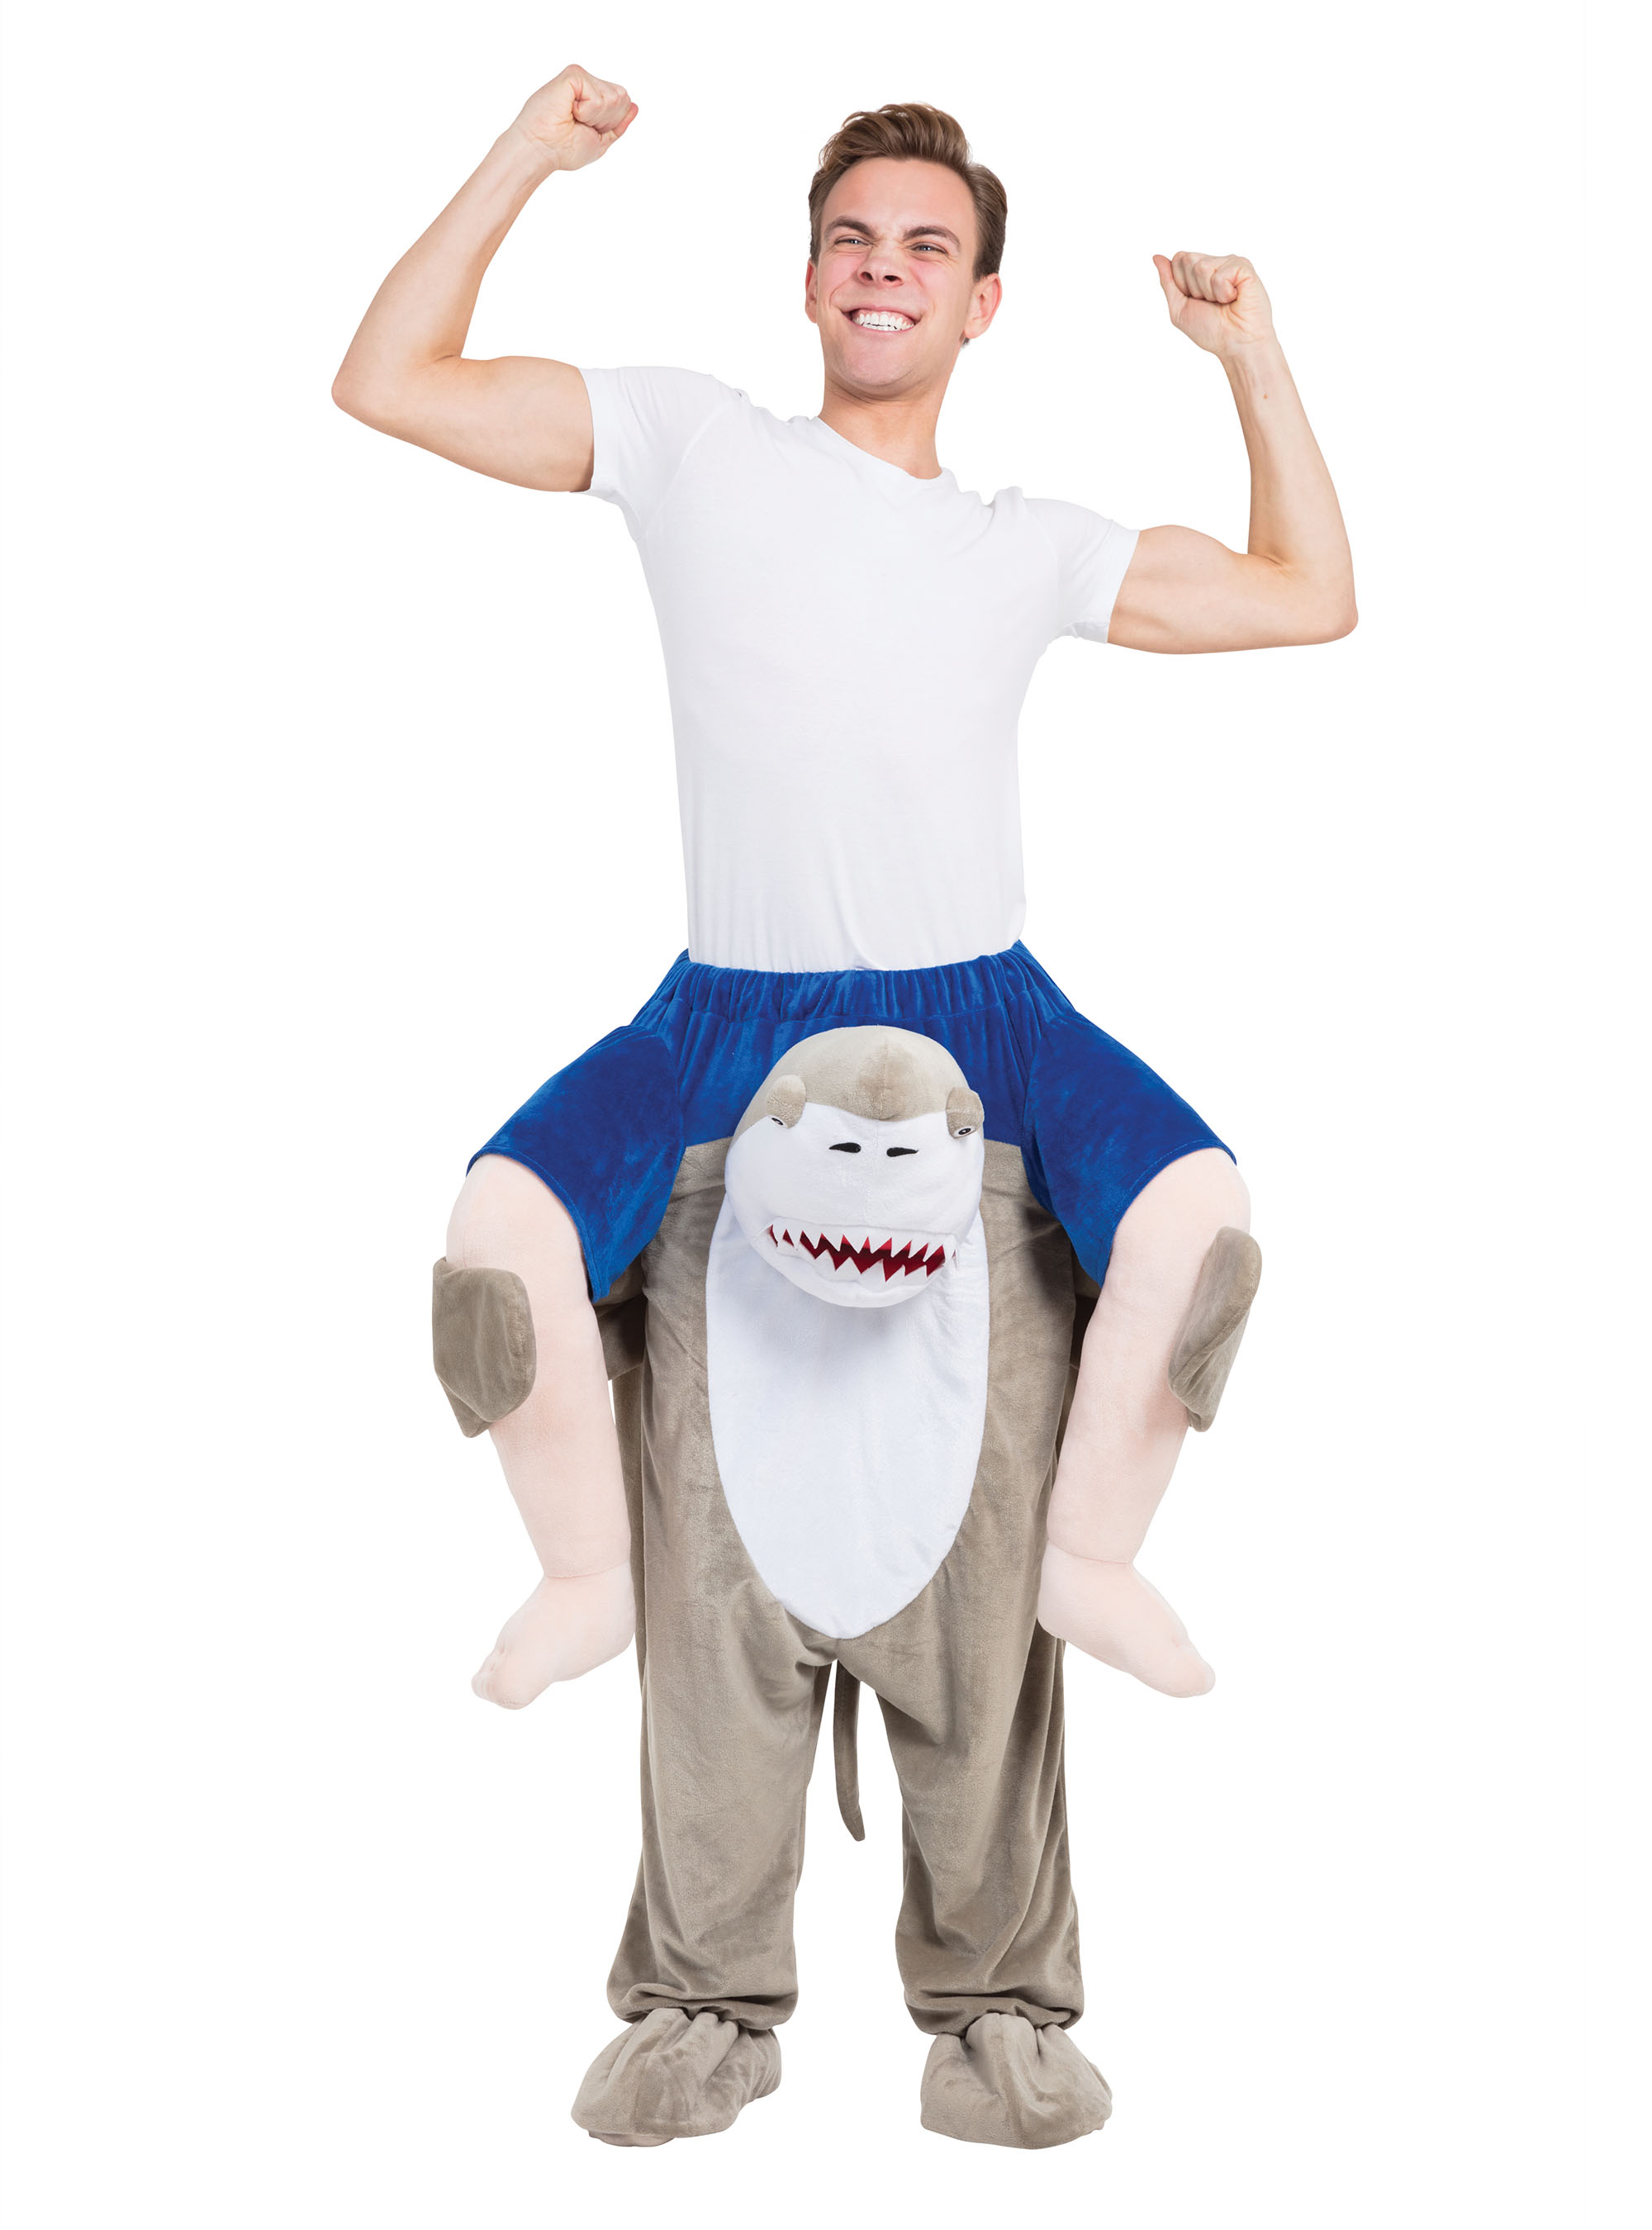 Sentinel Shark Piggy Back Costume Fancy Dress Costume Outfit Male Mens Adult One Size  sc 1 st  eBay & Shark Piggy Back Costume Fancy Dress Costume Outfit Male Mens Adult ...